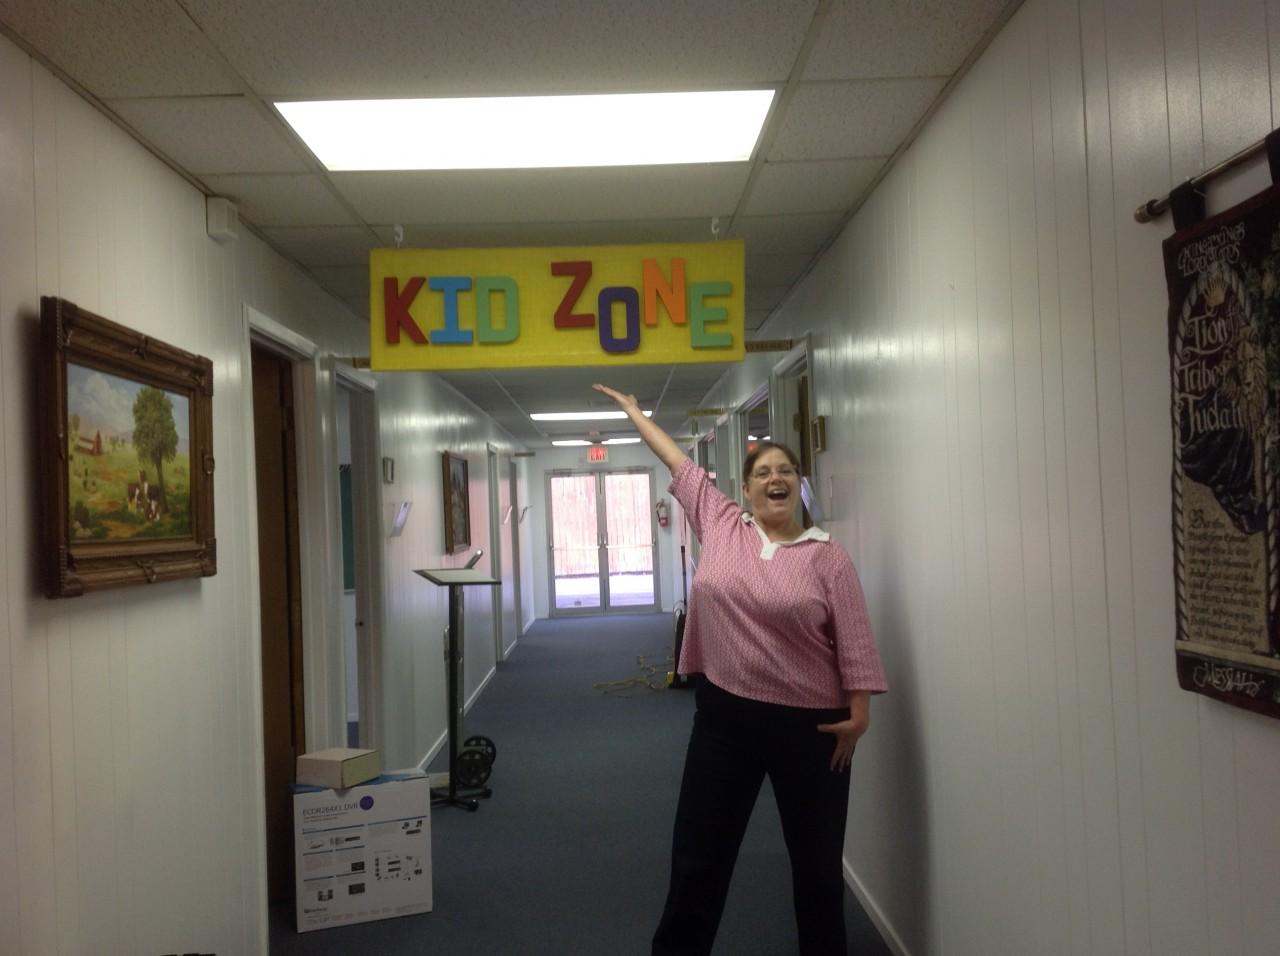 Kid Zone Improvements